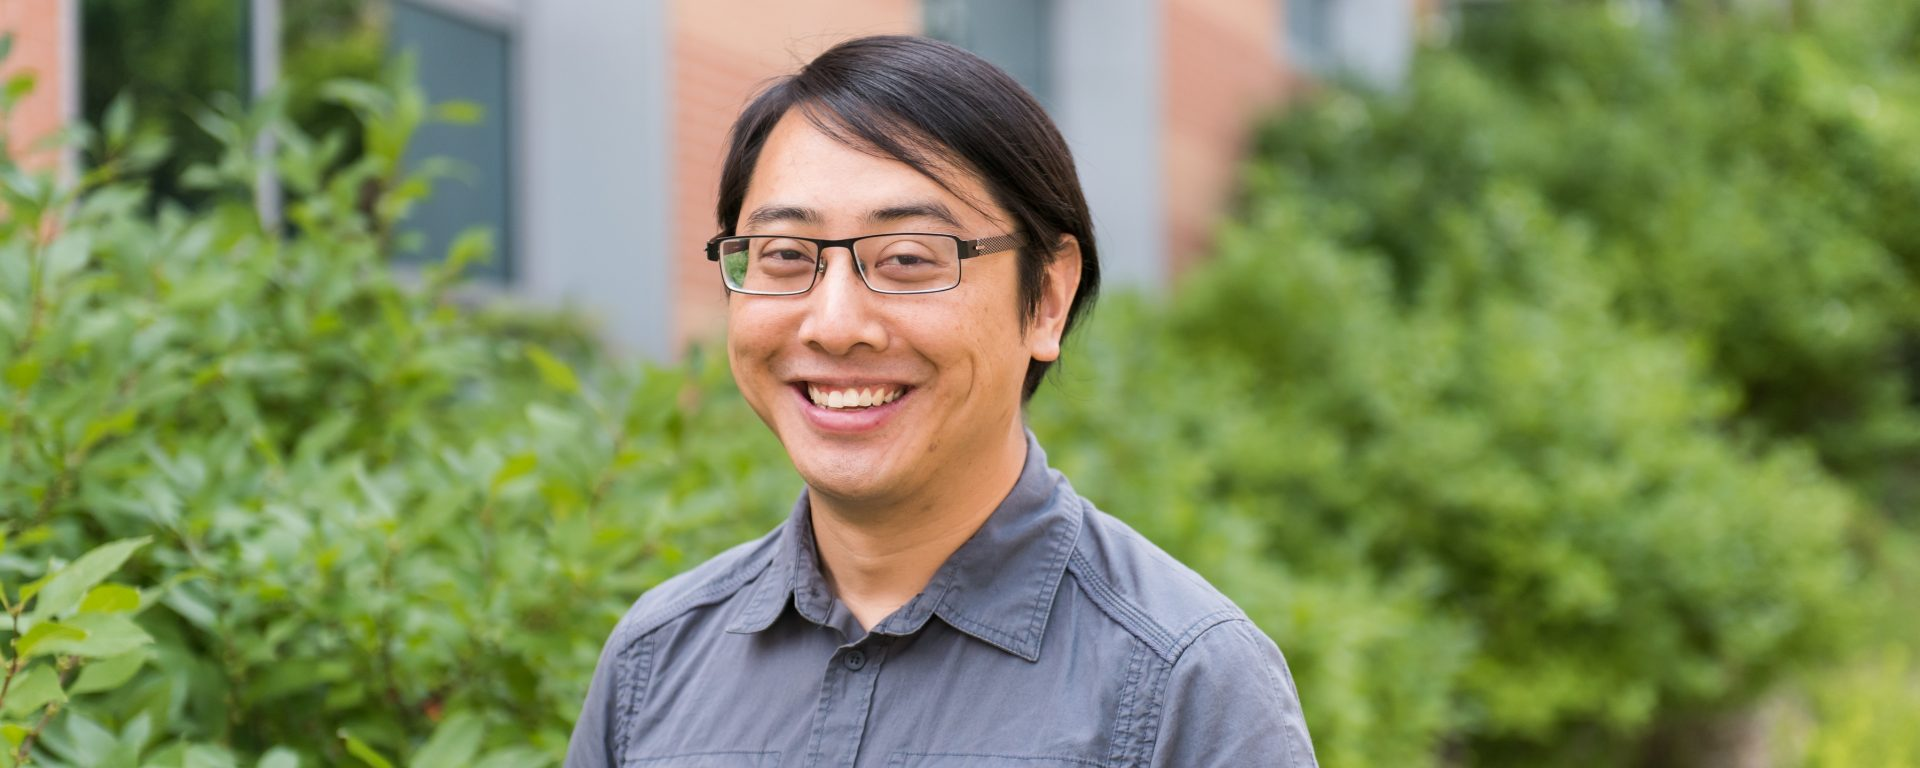 UMBC's Greg Szeto works to better predict patient responses to immunotherapy